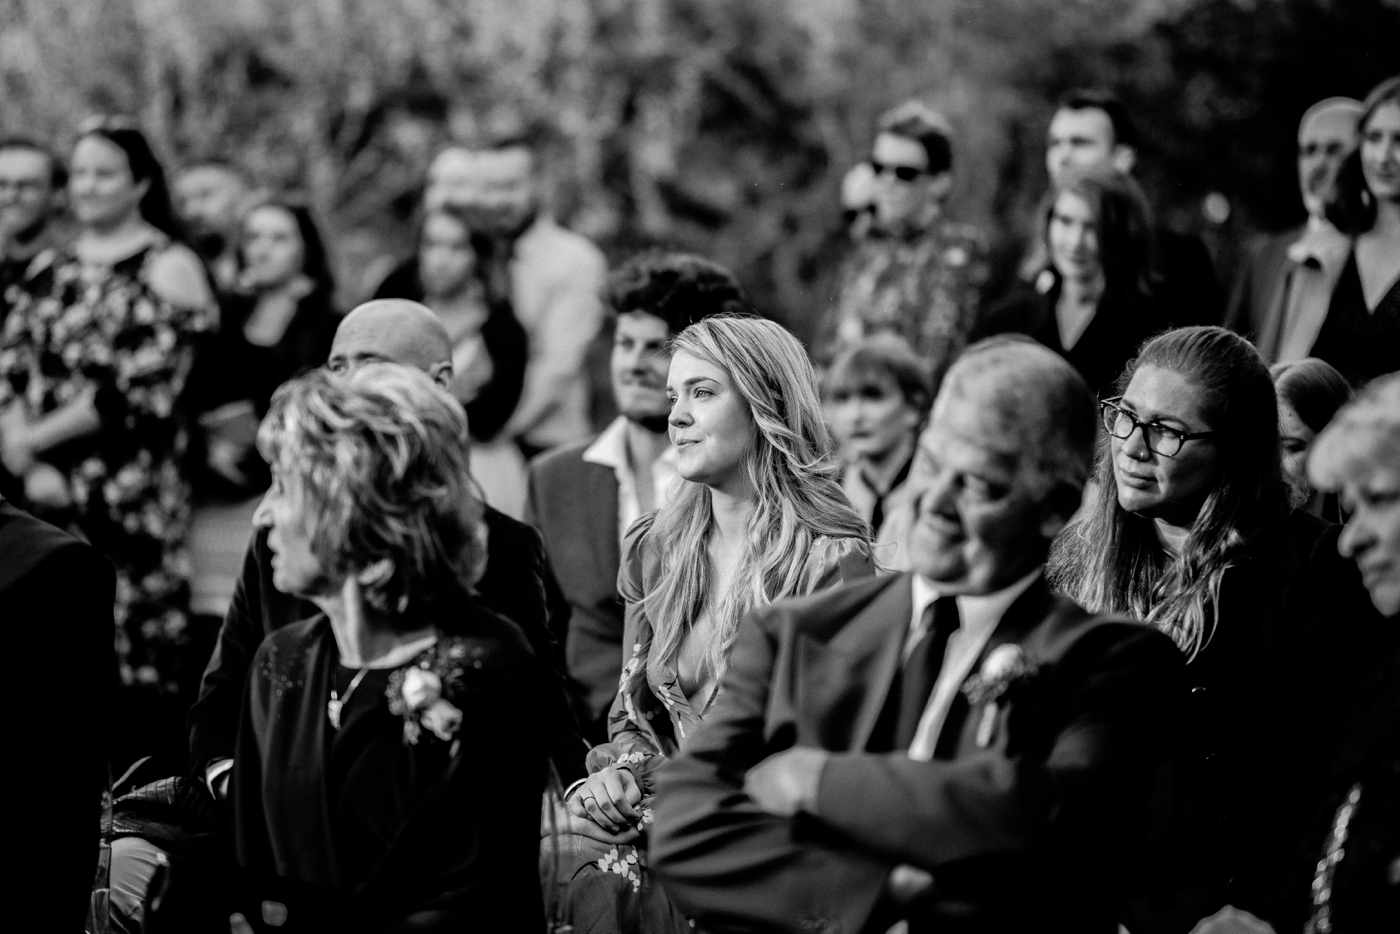 Jo & Aaron - Natural Wedding Photography in Adelaide - Beautiful, modern wedding photographer - Al Ru Farm Wedding Photography - Katherine Schultz_0016.jpg